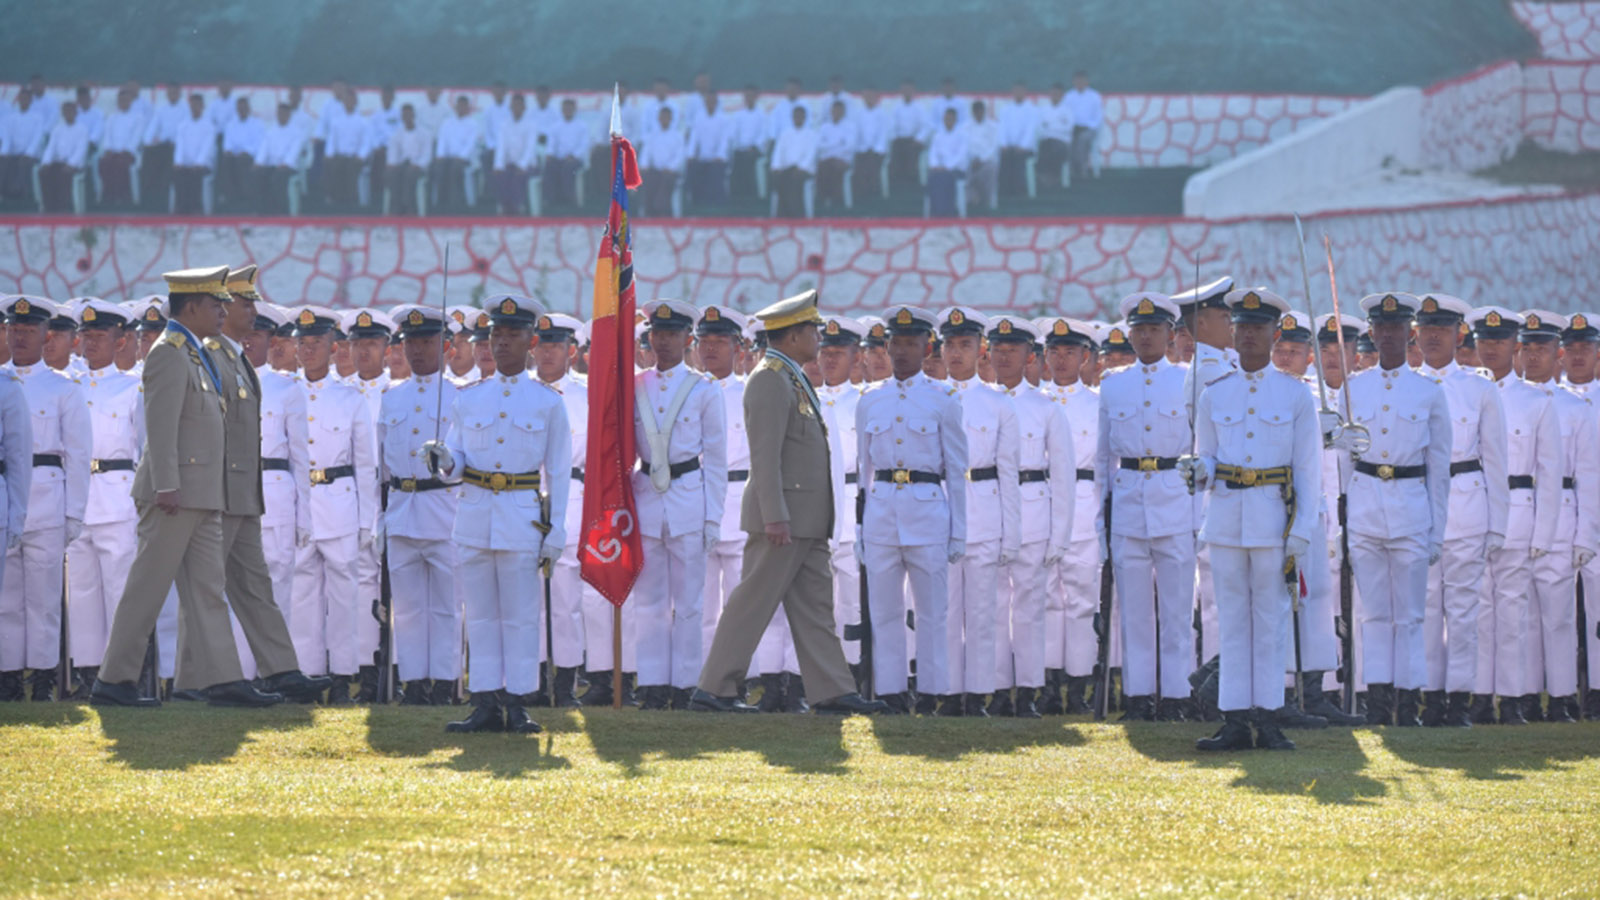 Senior General Min Aung Hlaing inspects graduation parade of the cadets of 61st Intake of the DSA in Pyin Oo Lwin.Photo: Office of the Commander-in-Chief